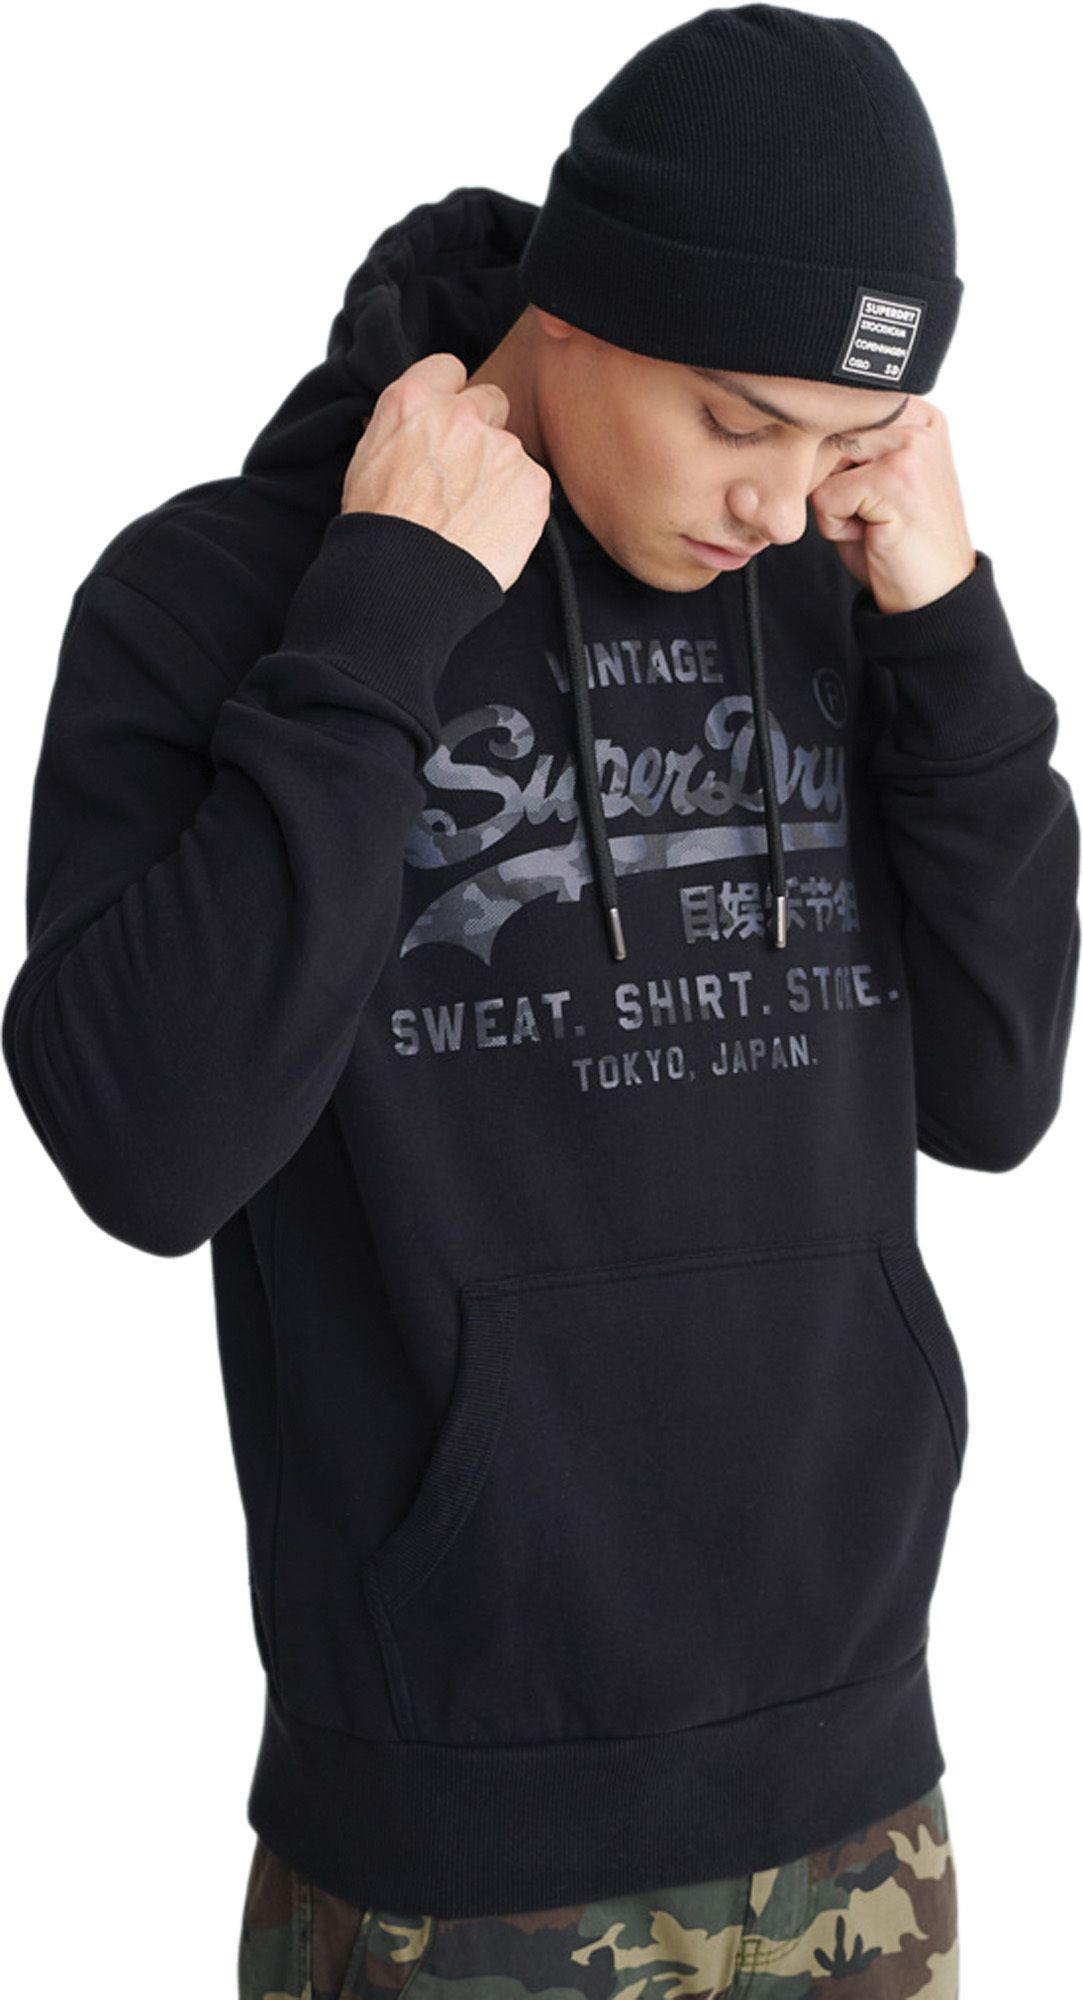 Superdry-Hoodies-amp-Sweats-Assorted-Styles miniatura 4